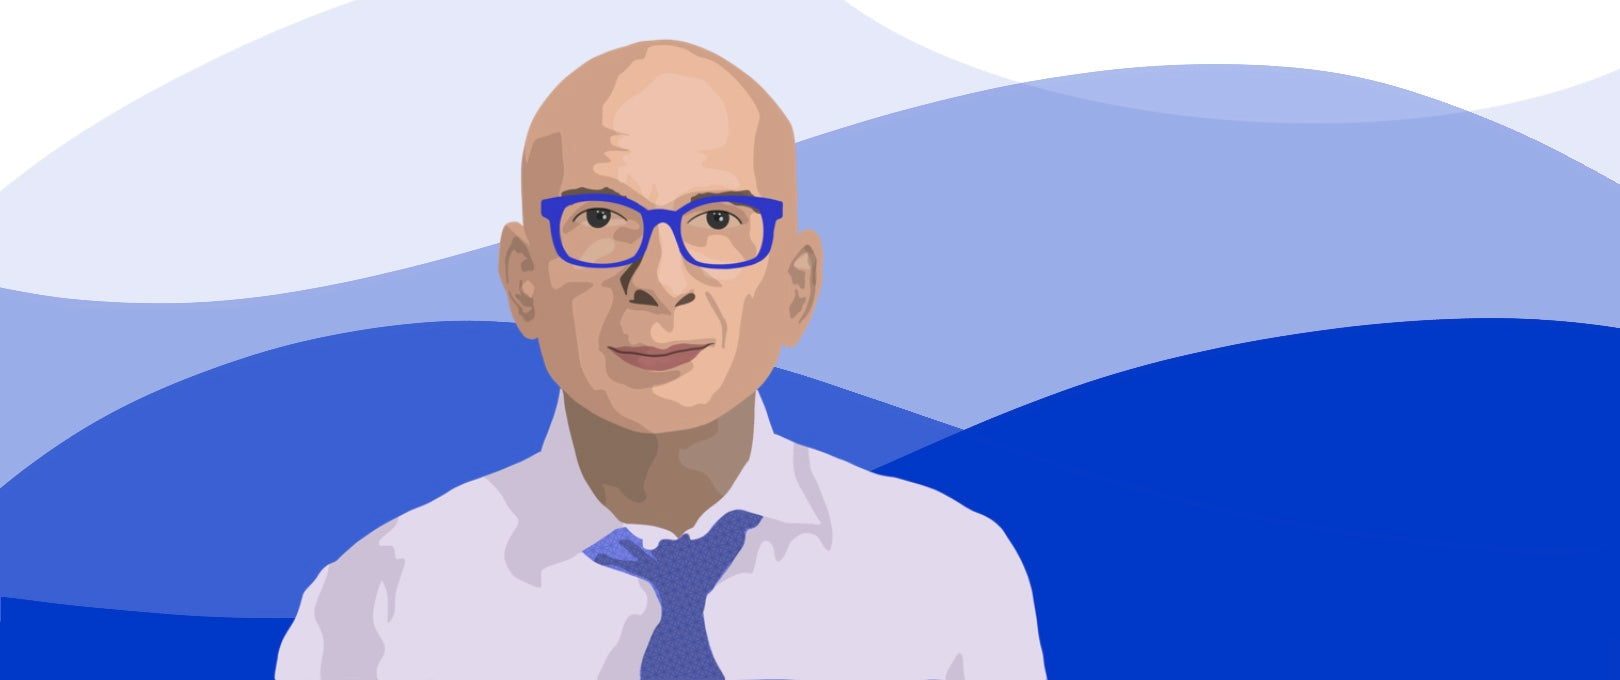 Seth Godin on Tribes, Leadership in Crisis, and Running the Perfect Zoom Meeting